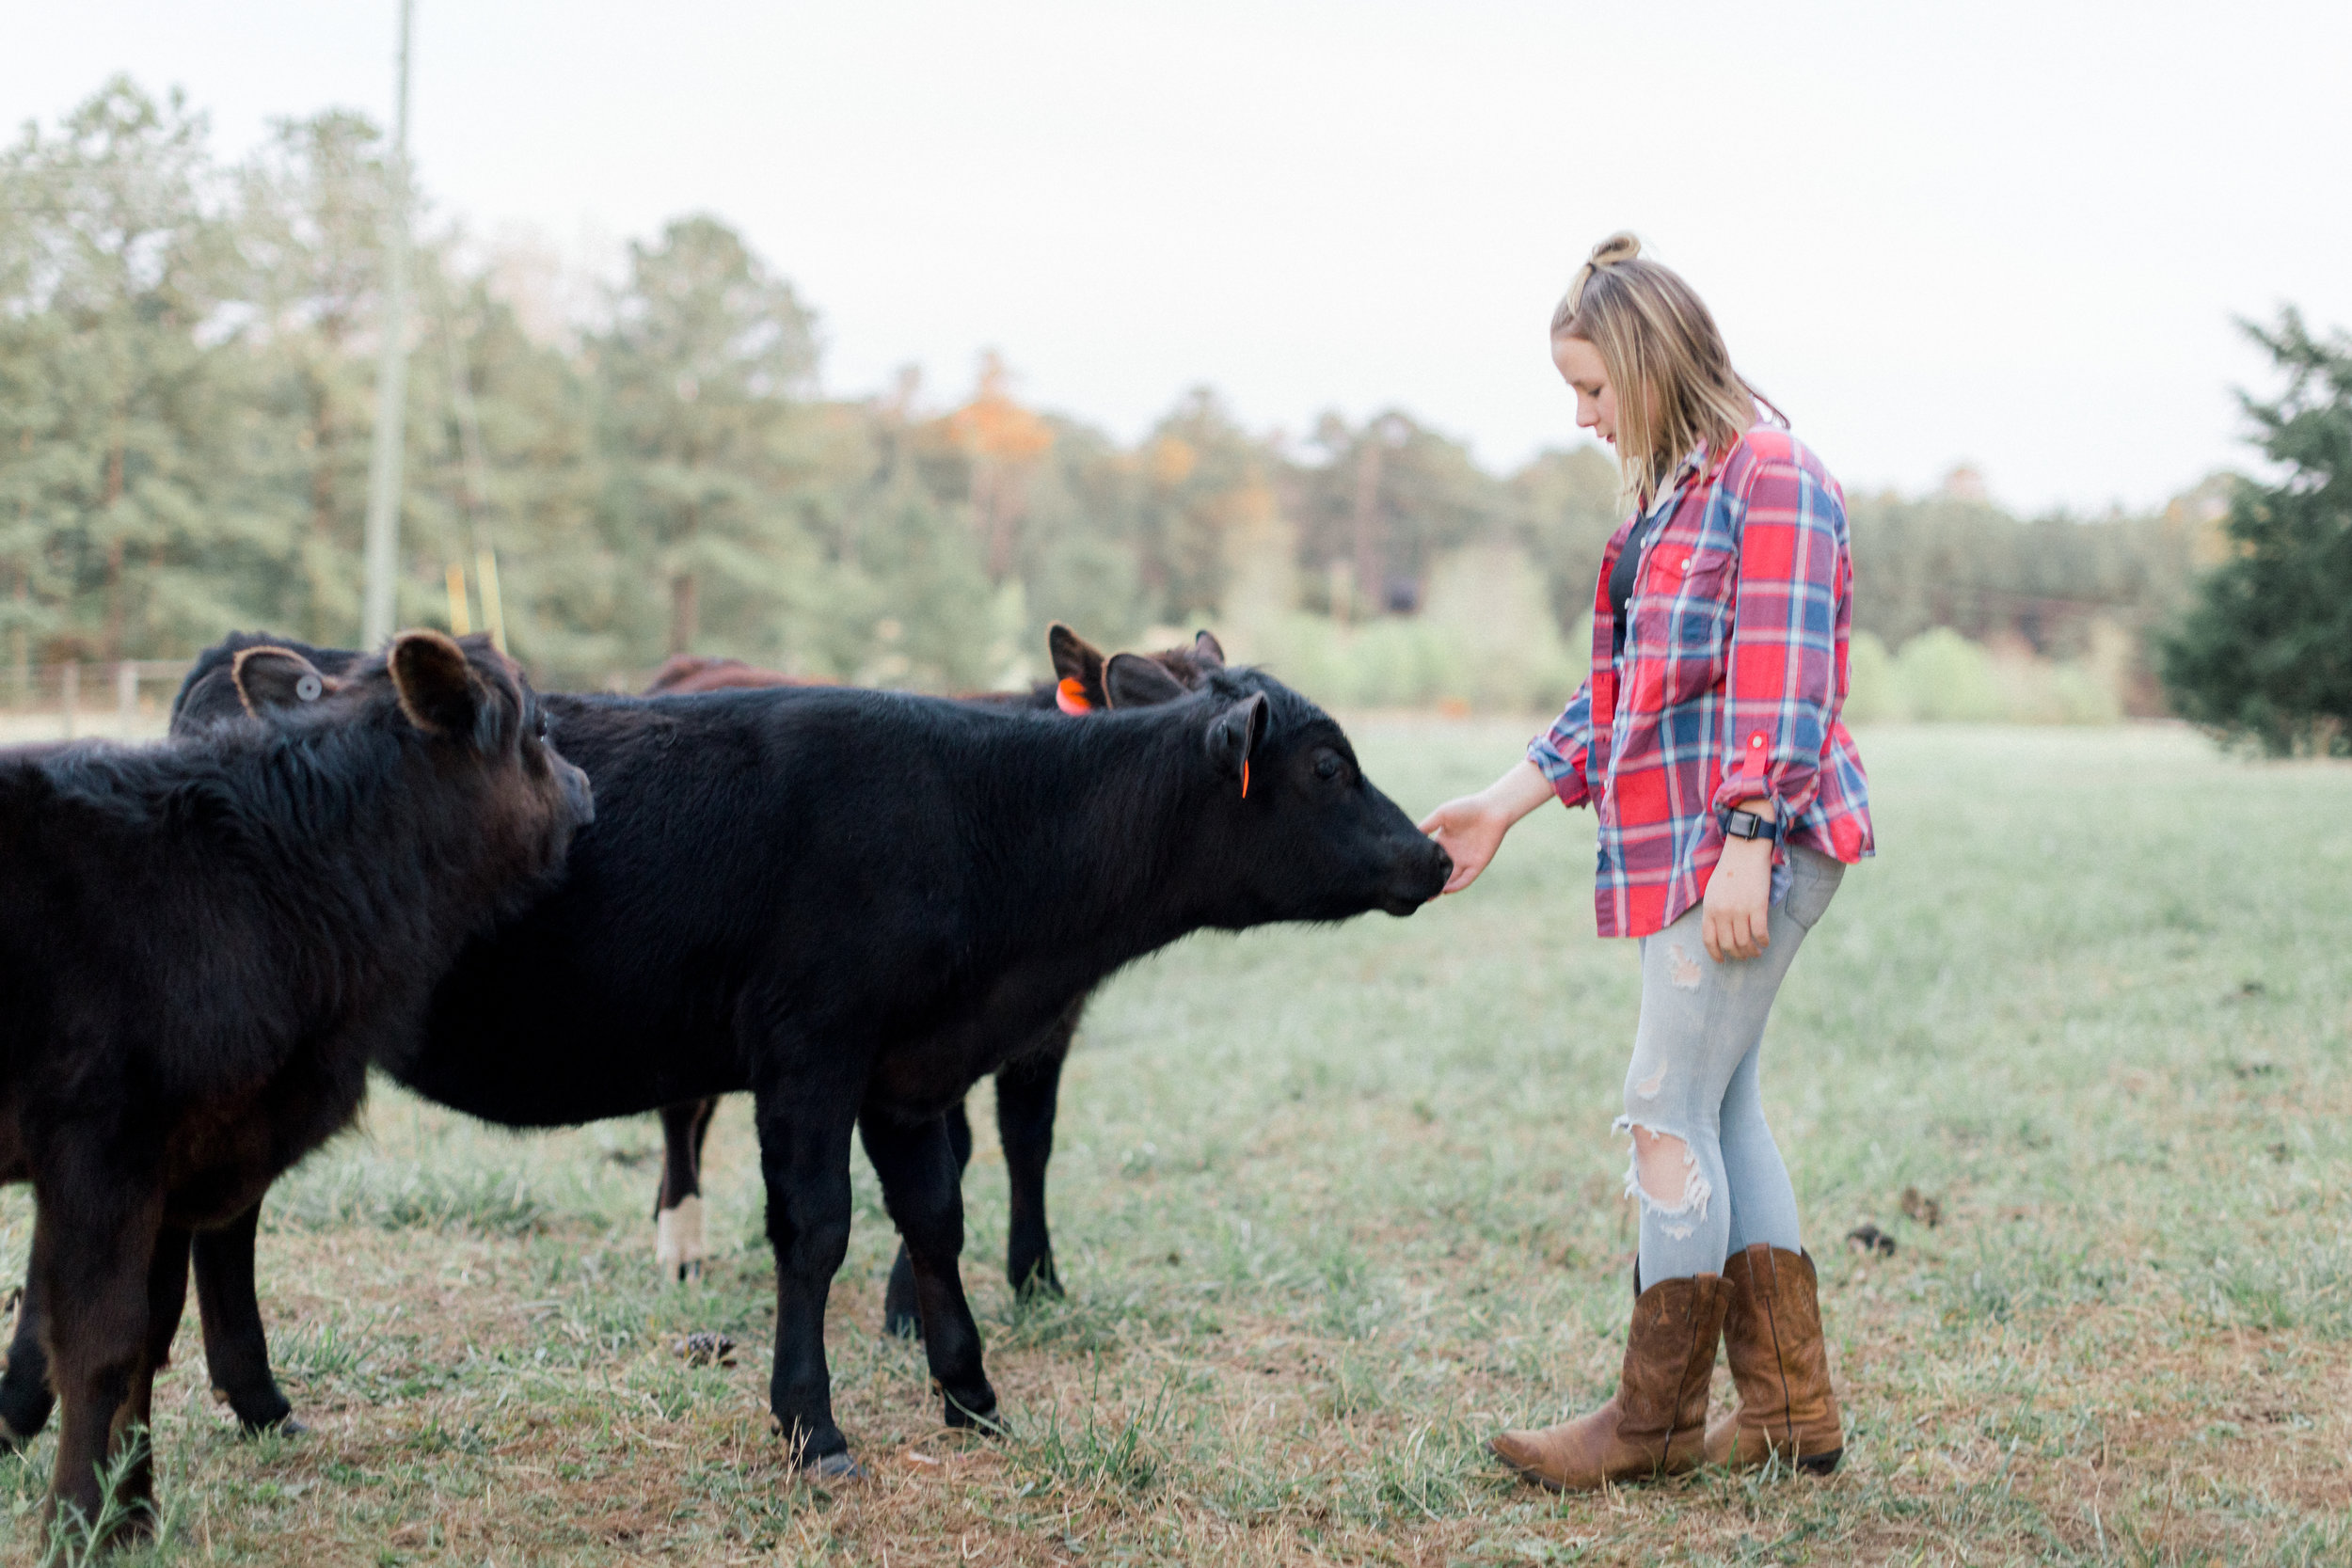 cows atlanta darian reilly photography-11.jpg